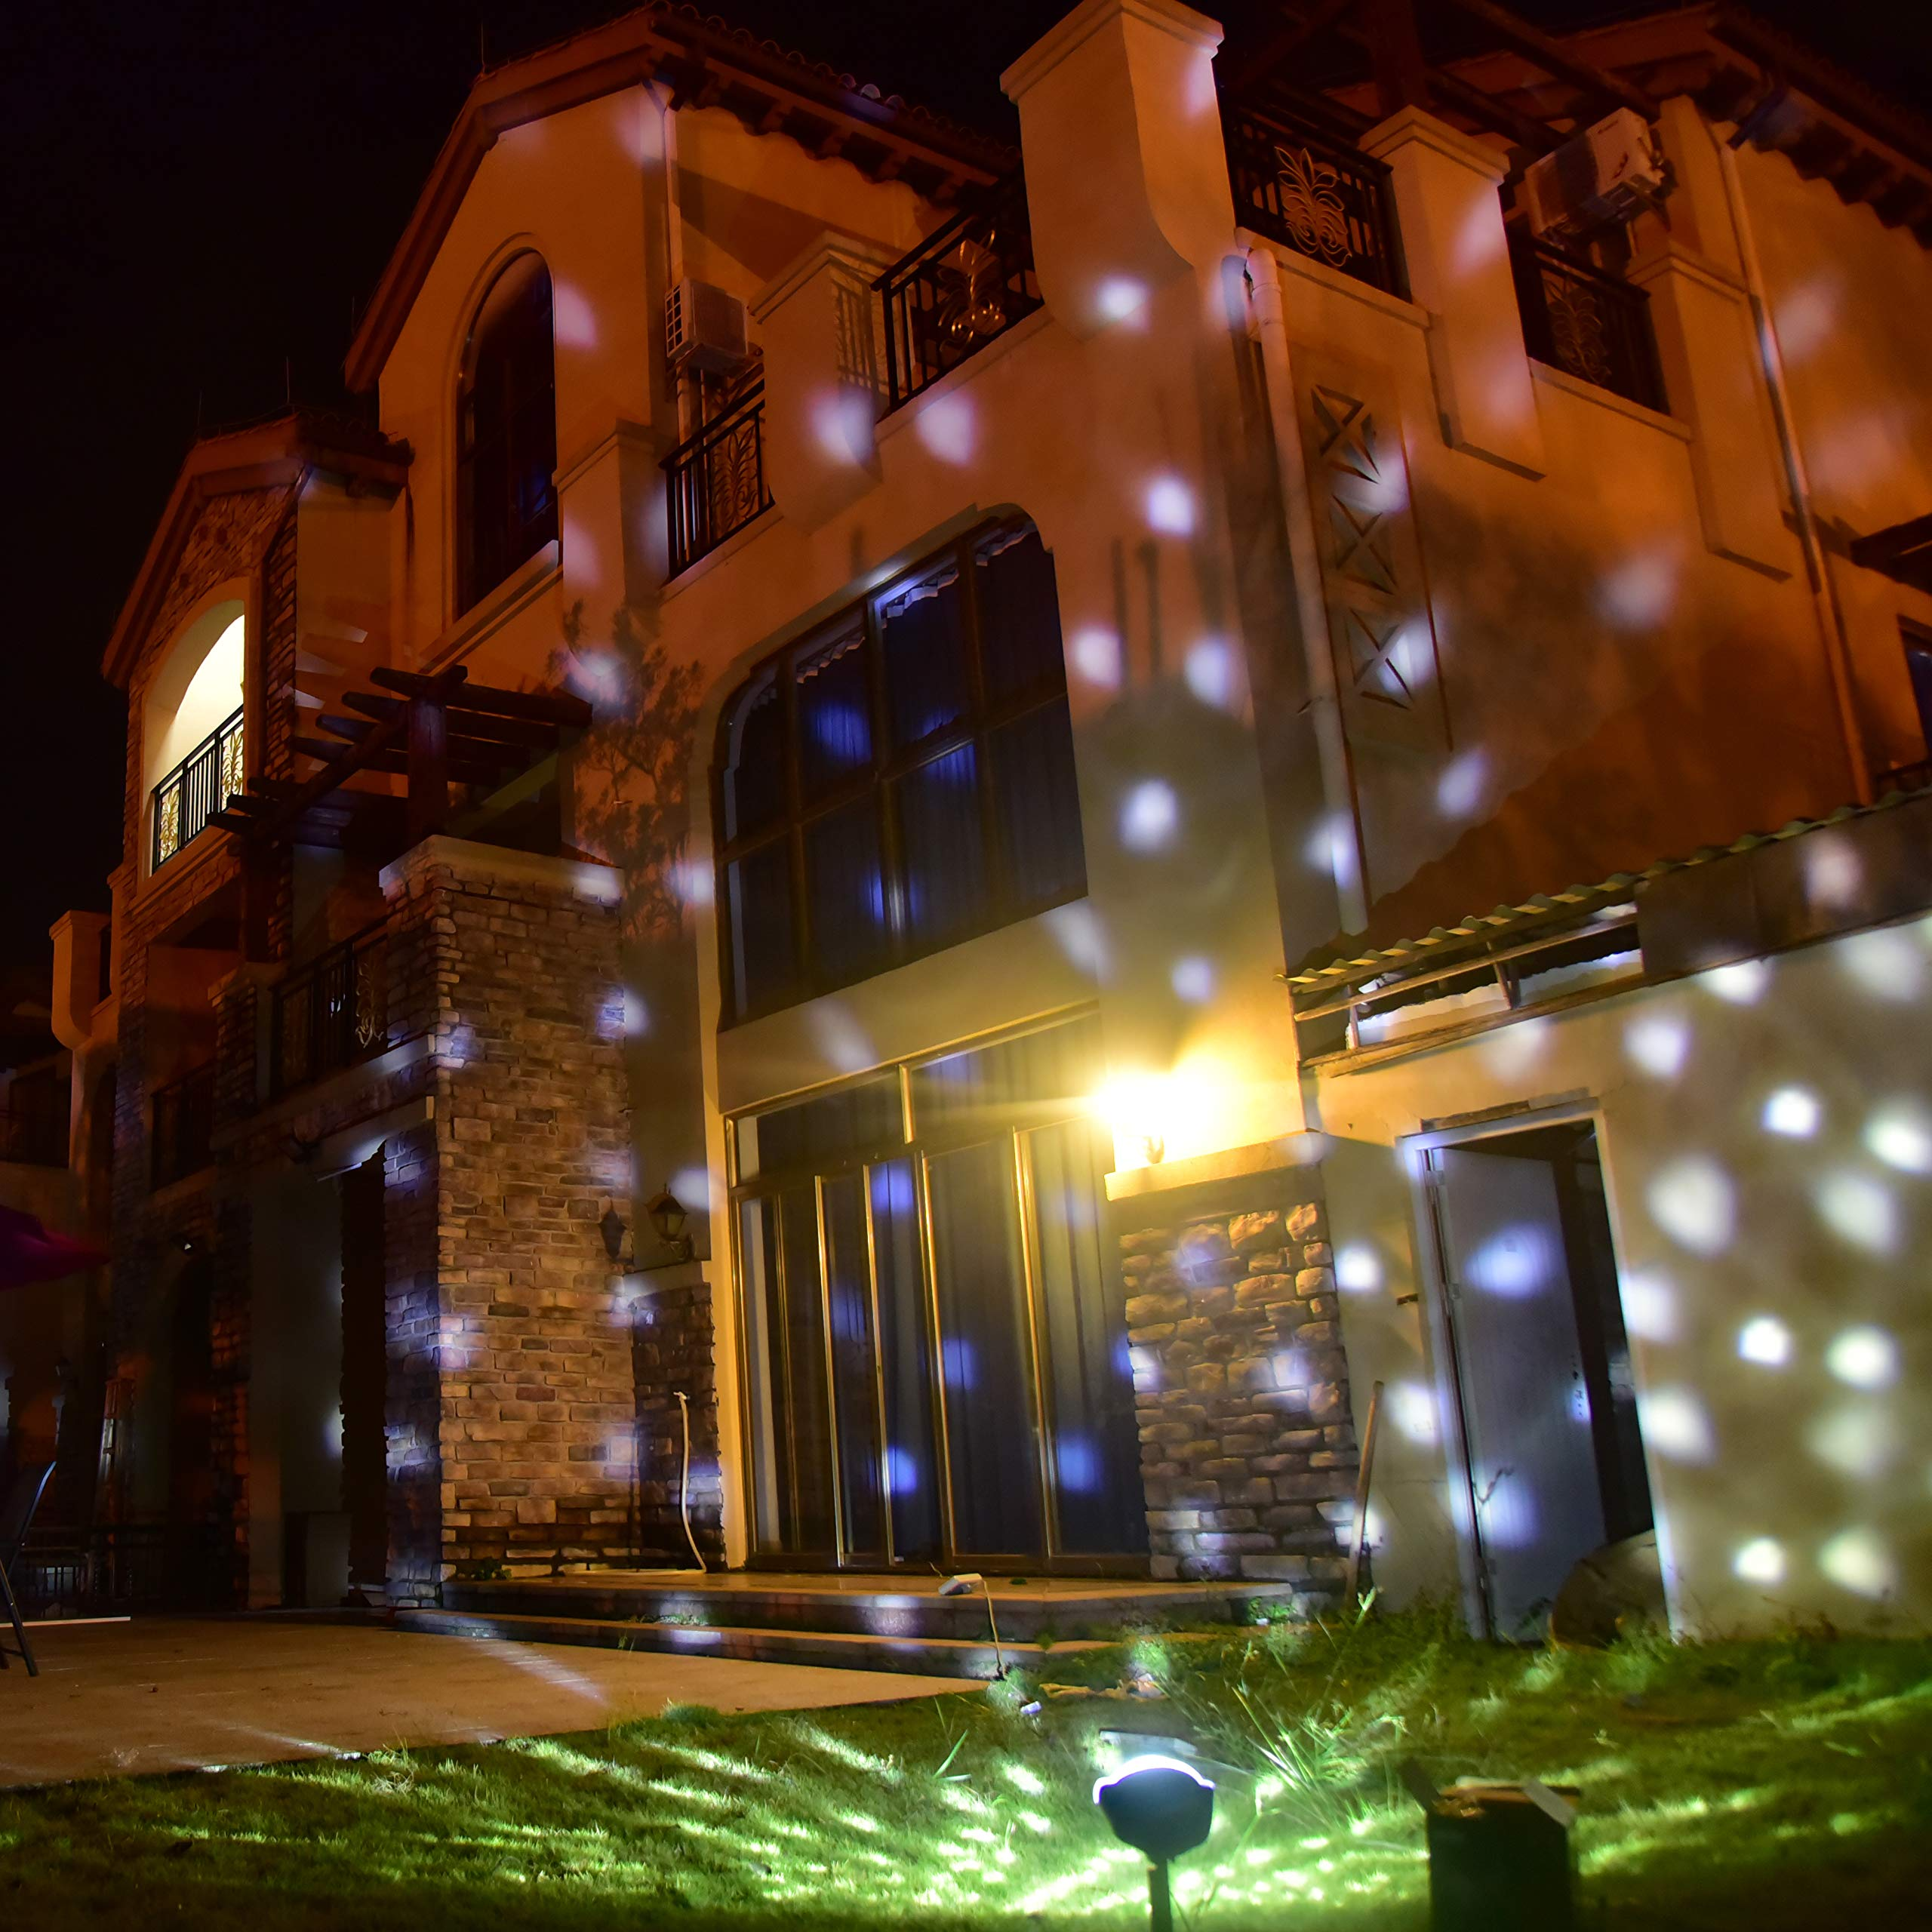 YoyoKit Snowfall Christmas Light Projector, Outdoor IP65 Waterproof Snowflake Motion Show Lights with RF Wireless Remote for Xmas, Landscape, Patio, Garden, Decoration by YoyoKit (Image #2)